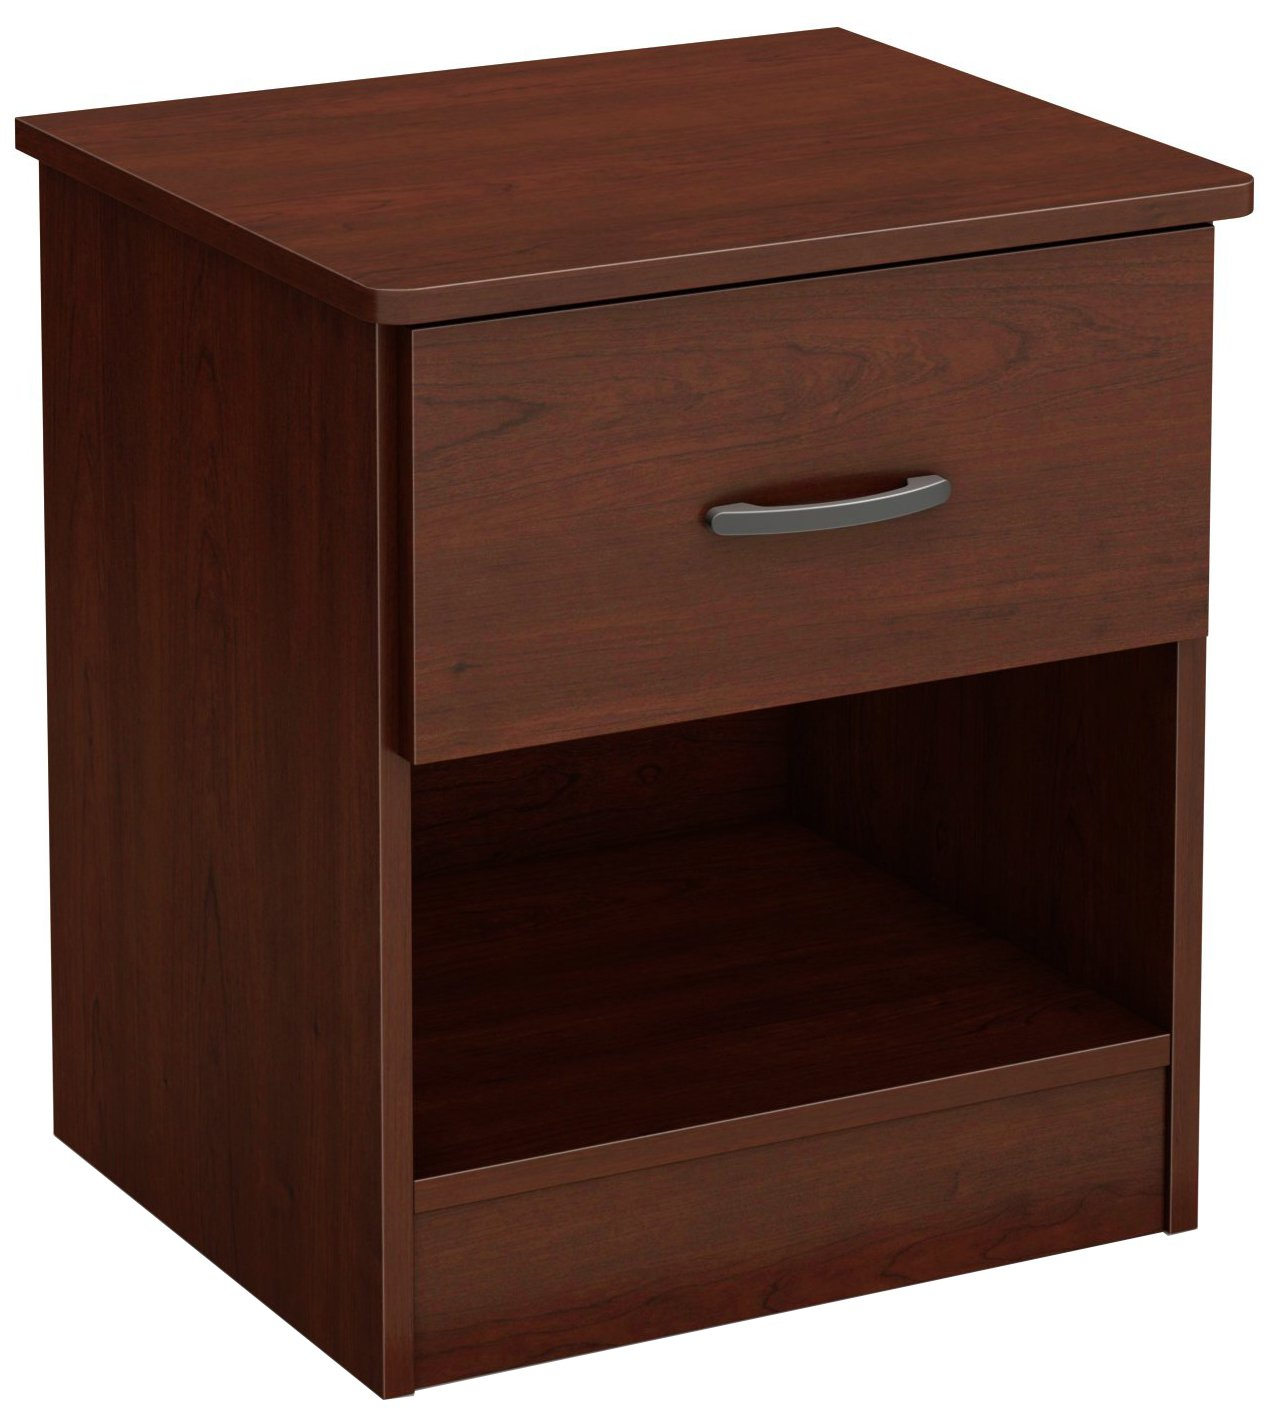 South Shore Furniture 10083 Libra 1-Drawer Nightstand, Royal Cherry